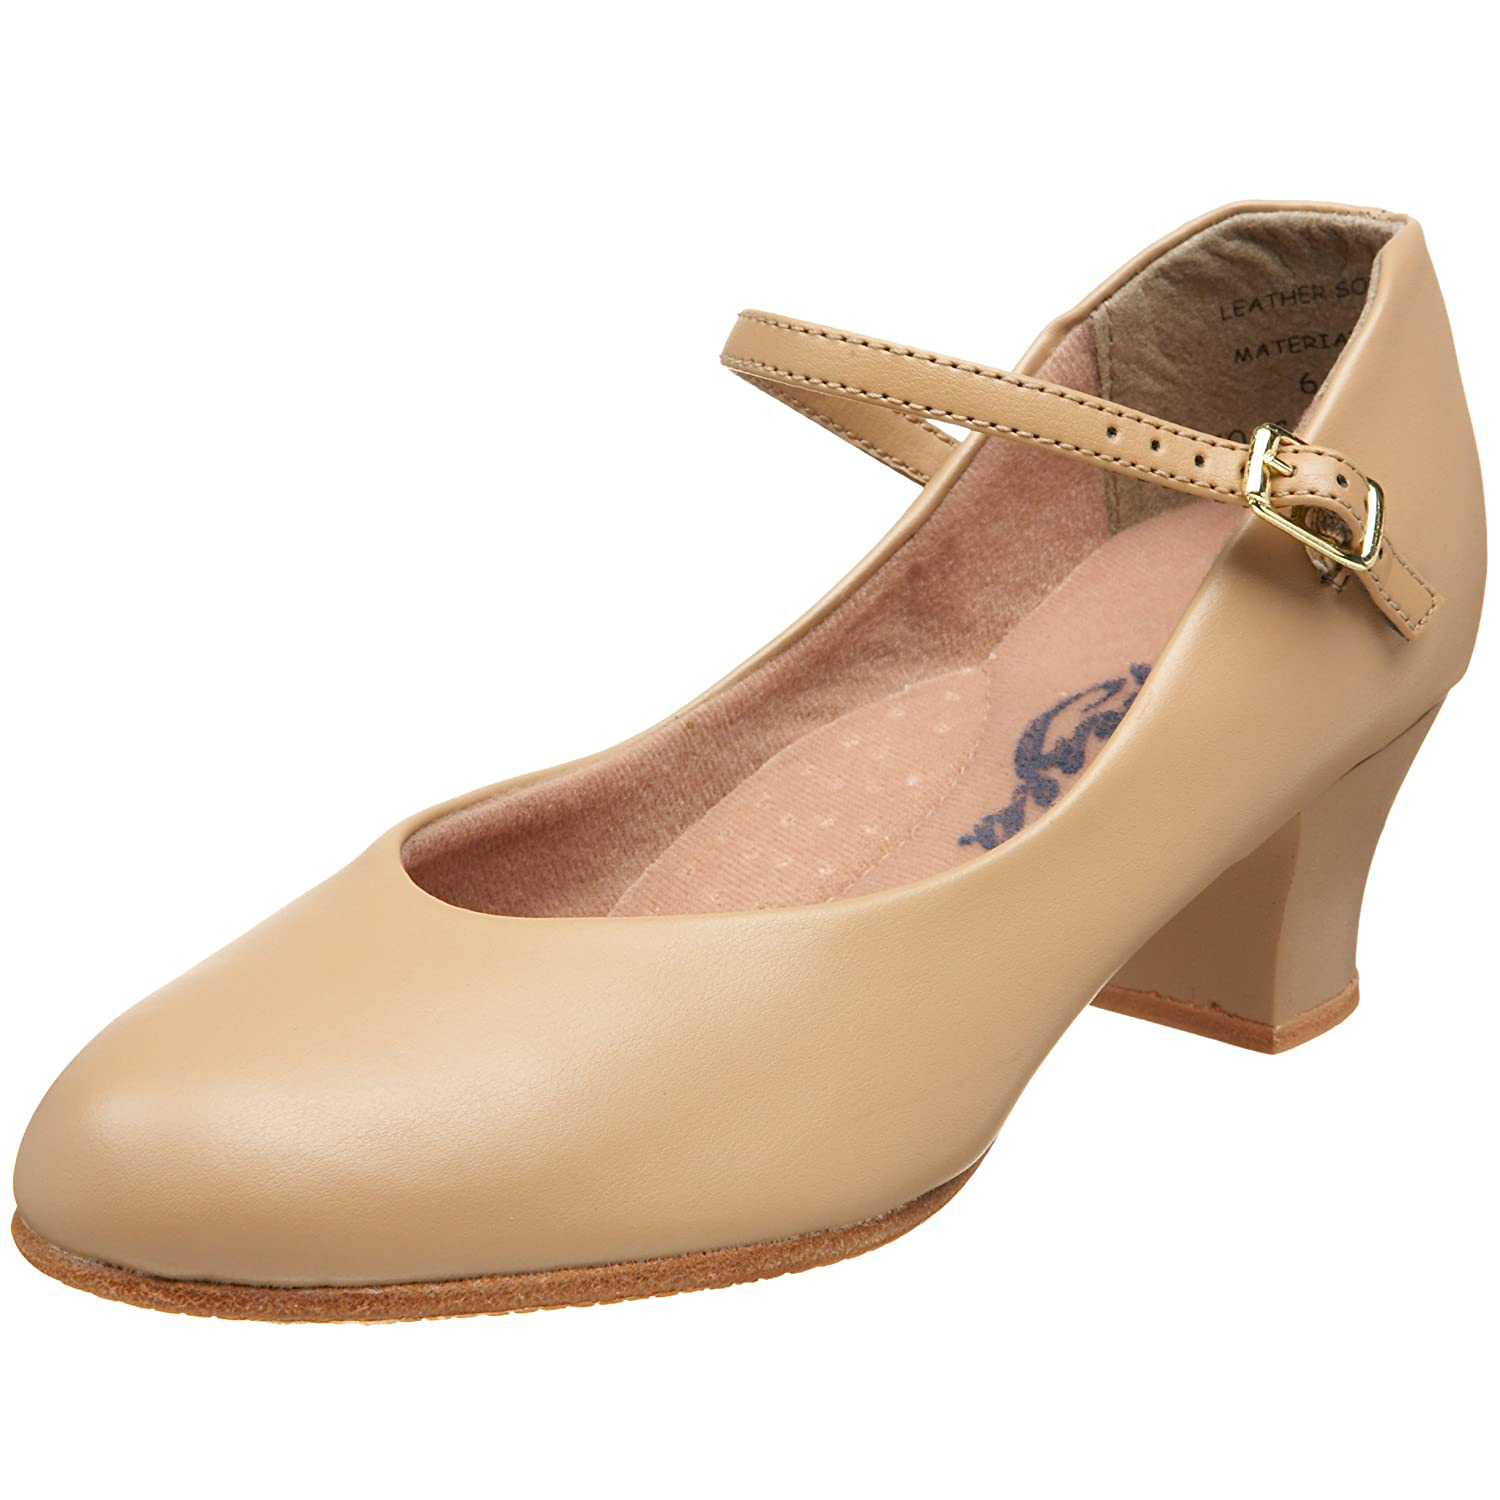 Capezio 550 Tan Junior Footlight B002CO3FW2 7 W US|Caramel